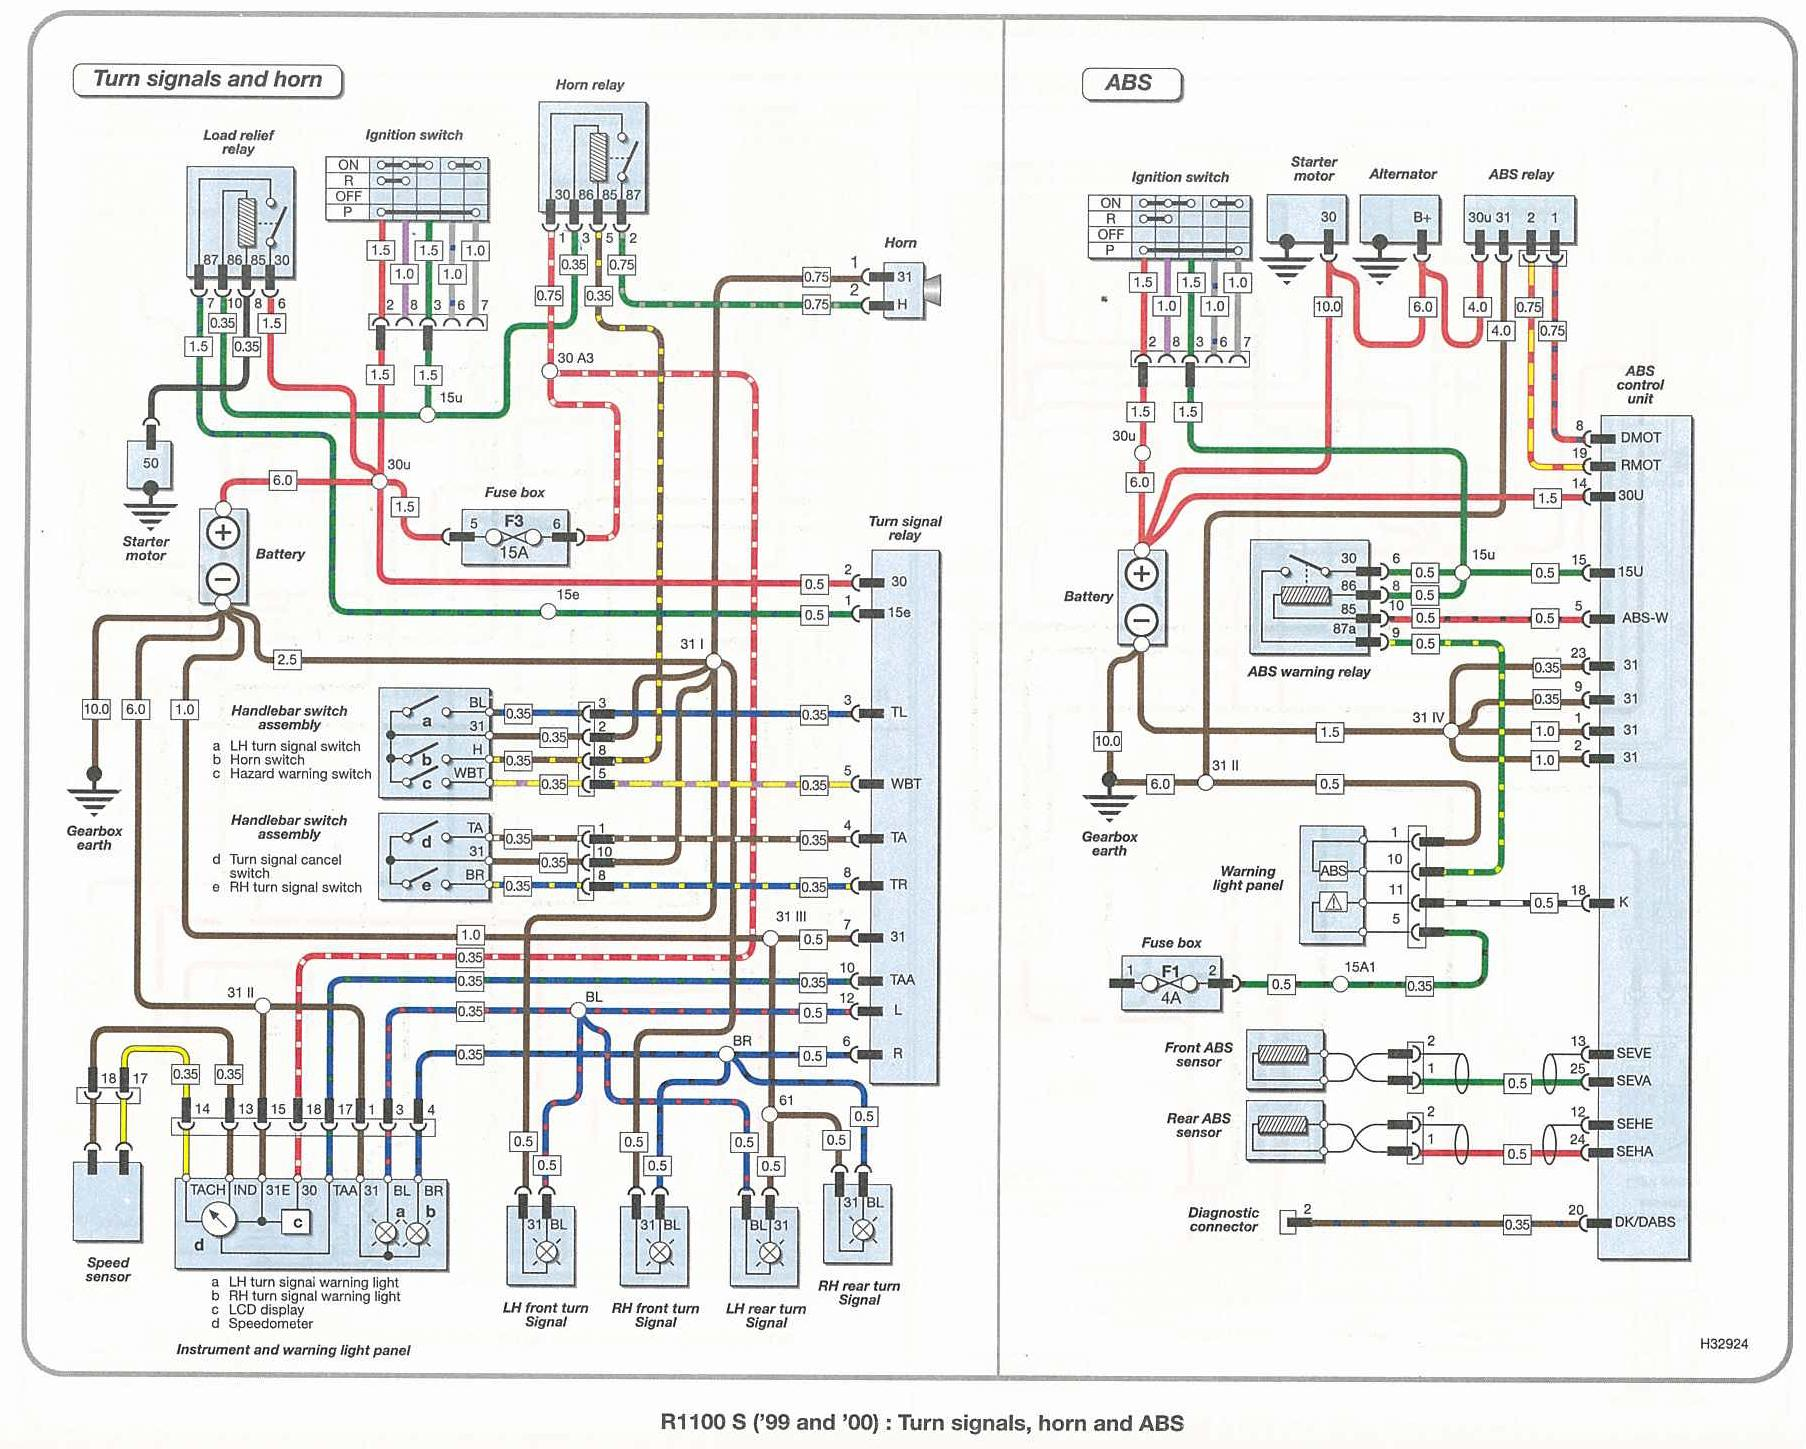 wiring03 bmw wiring diagram bmw wiring diagrams e39 \u2022 wiring diagrams j E46 Wiring Diagram PDF at couponss.co